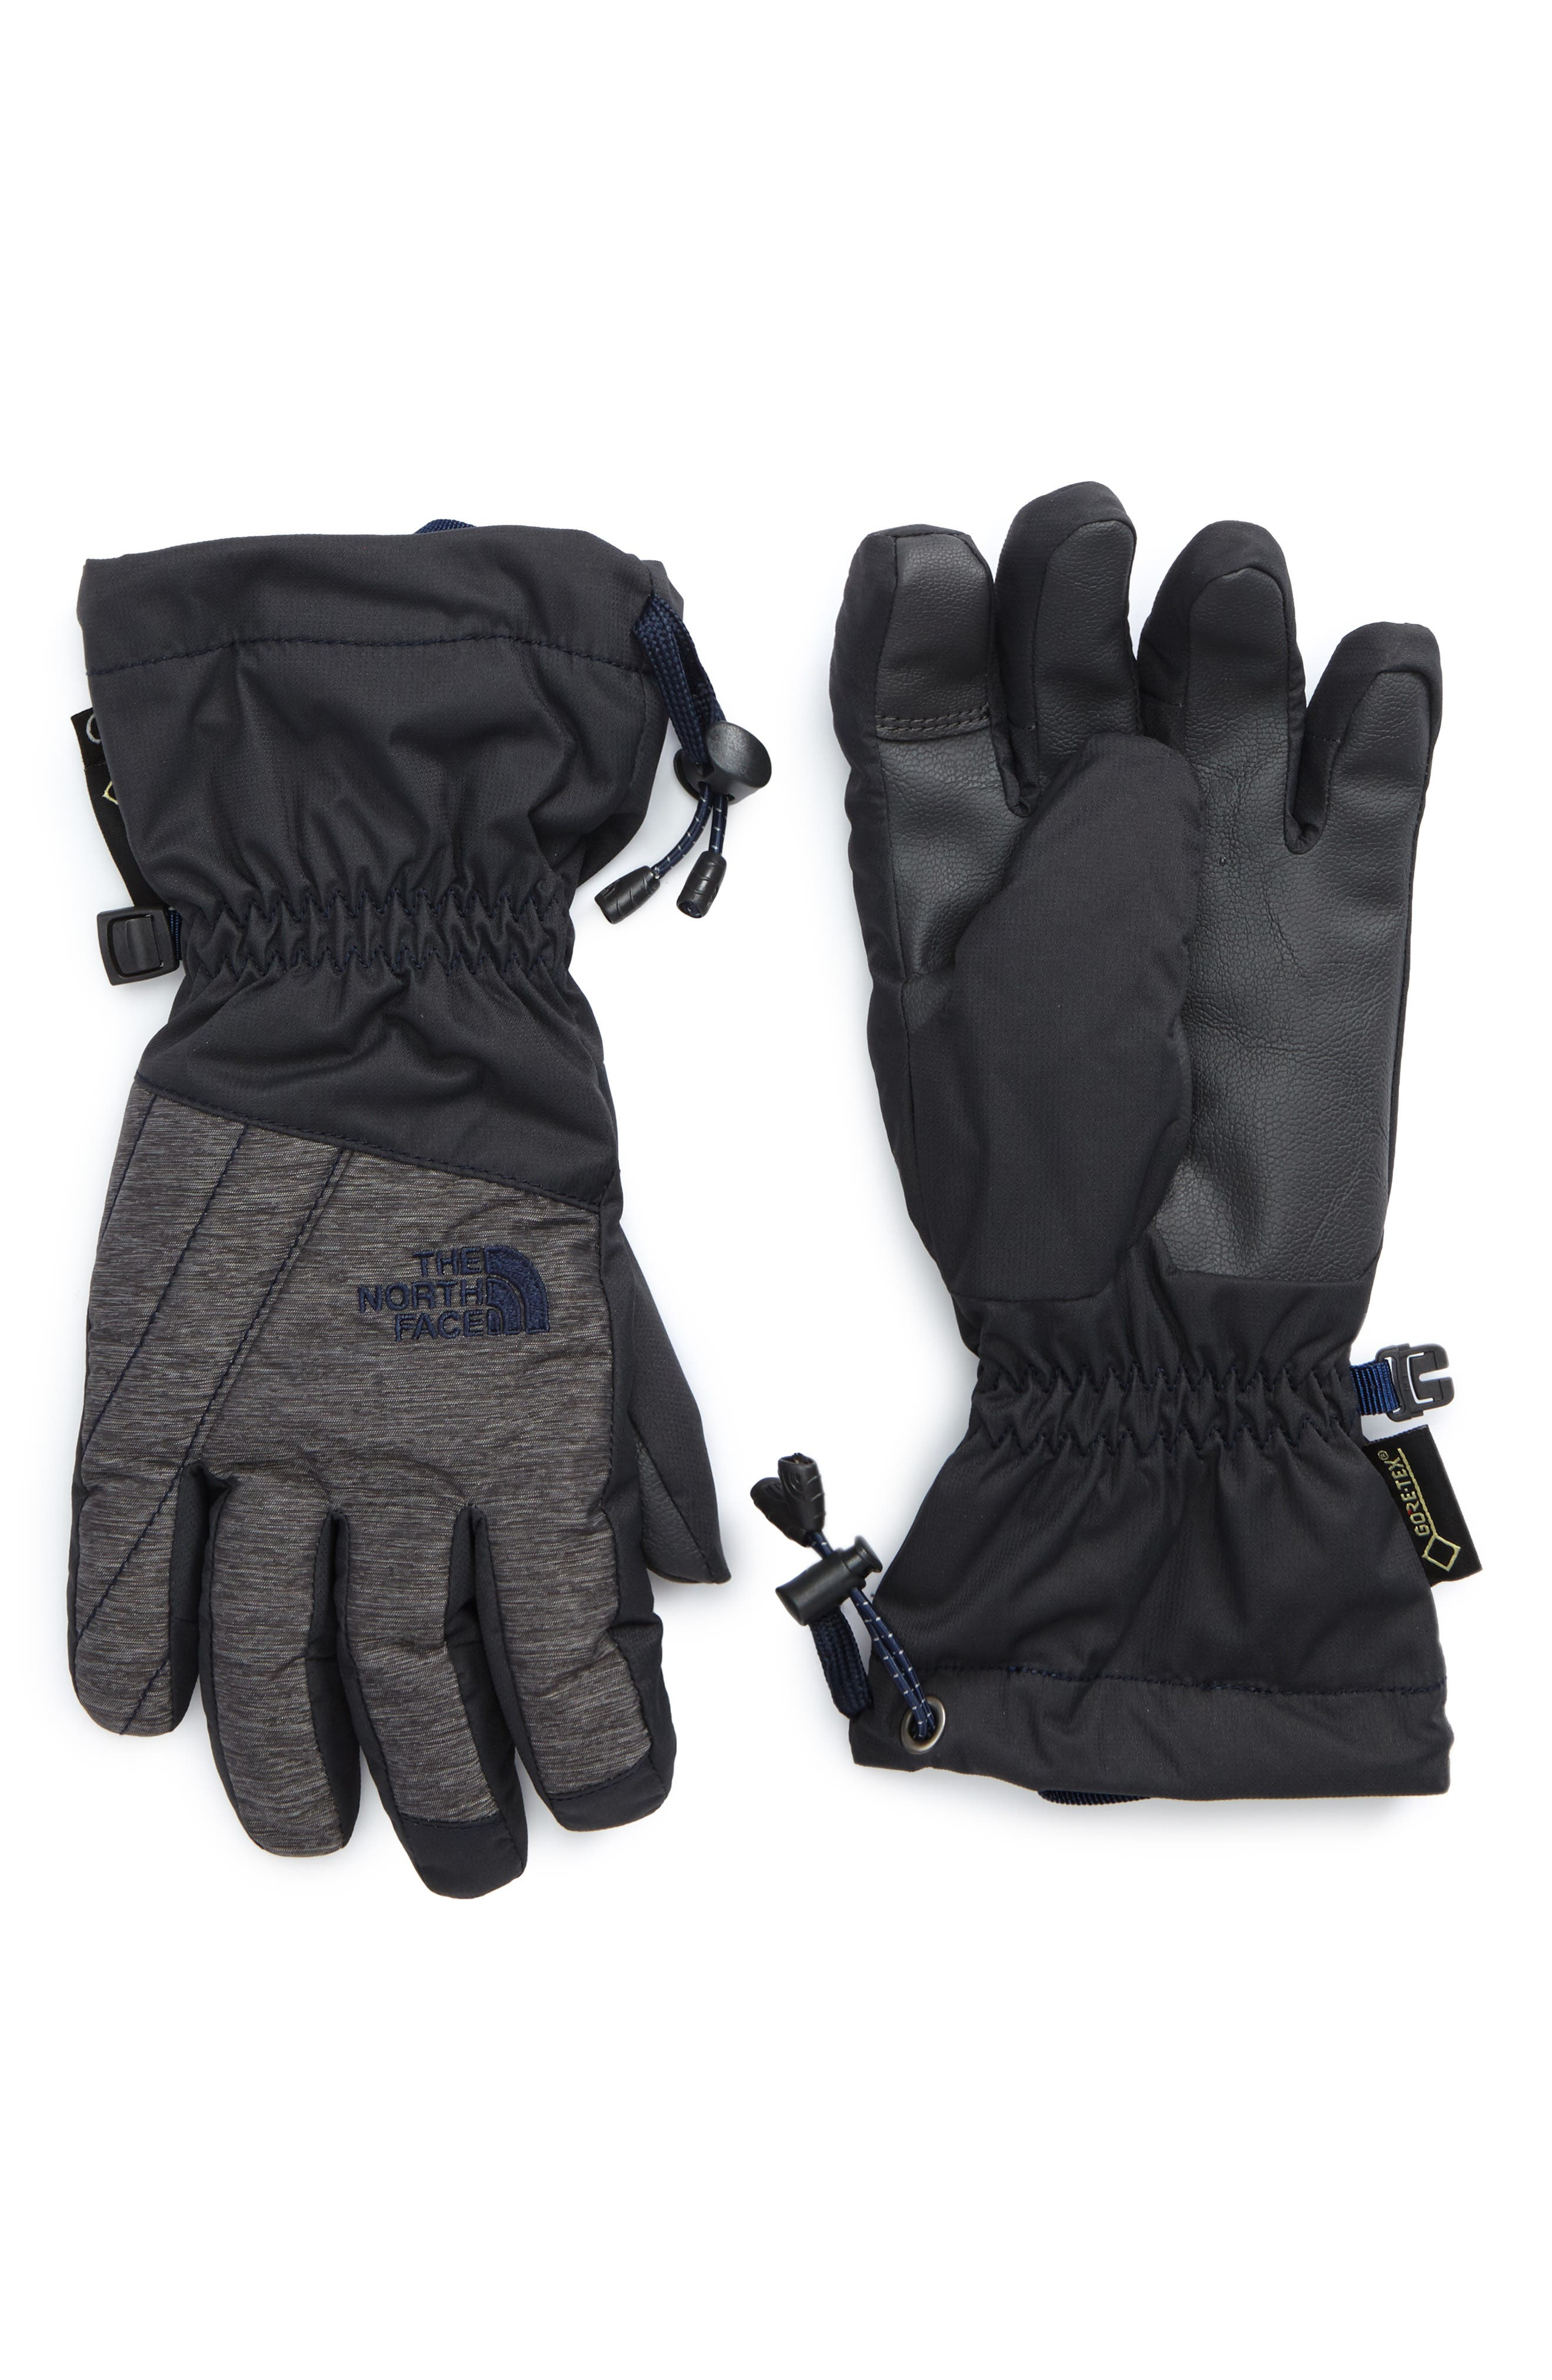 Alternate Image 1 Selected - The North Face Montana Gore-Tex® Waterproof Gloves (Kids)